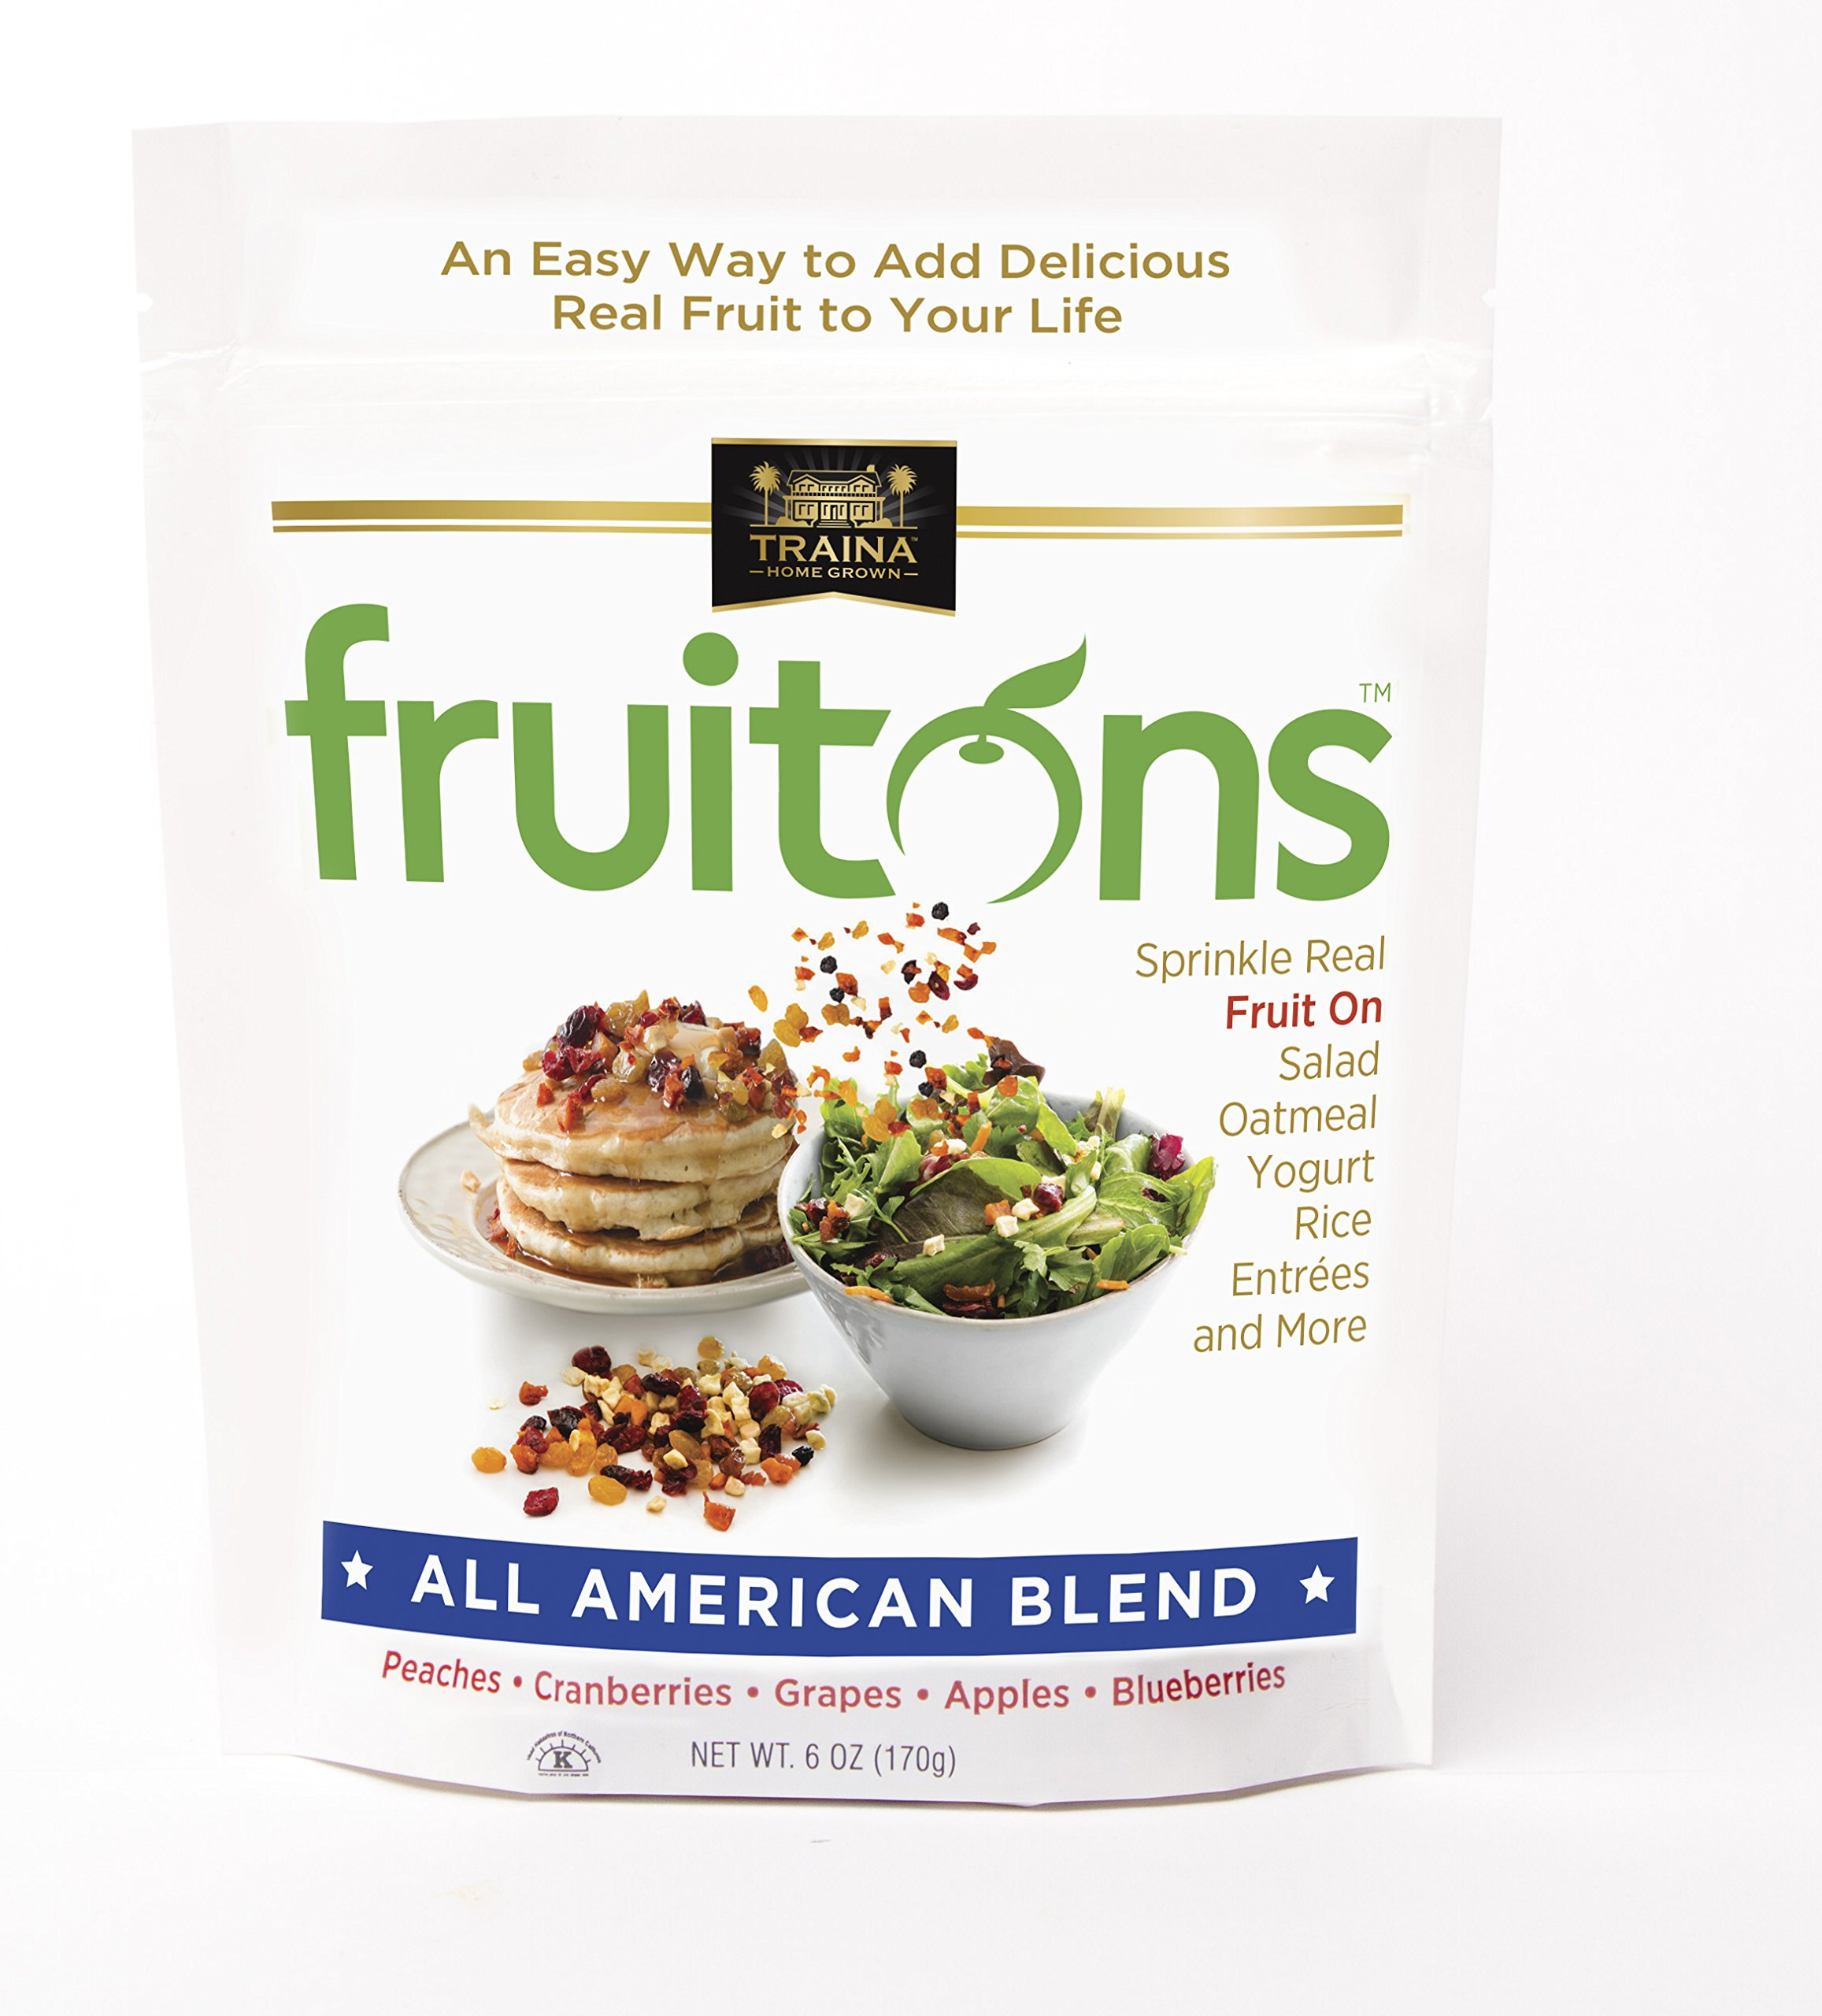 Traina Home Grown - All American Sun Dried Fruit Blend, 6 oz - 2 pack by Traina